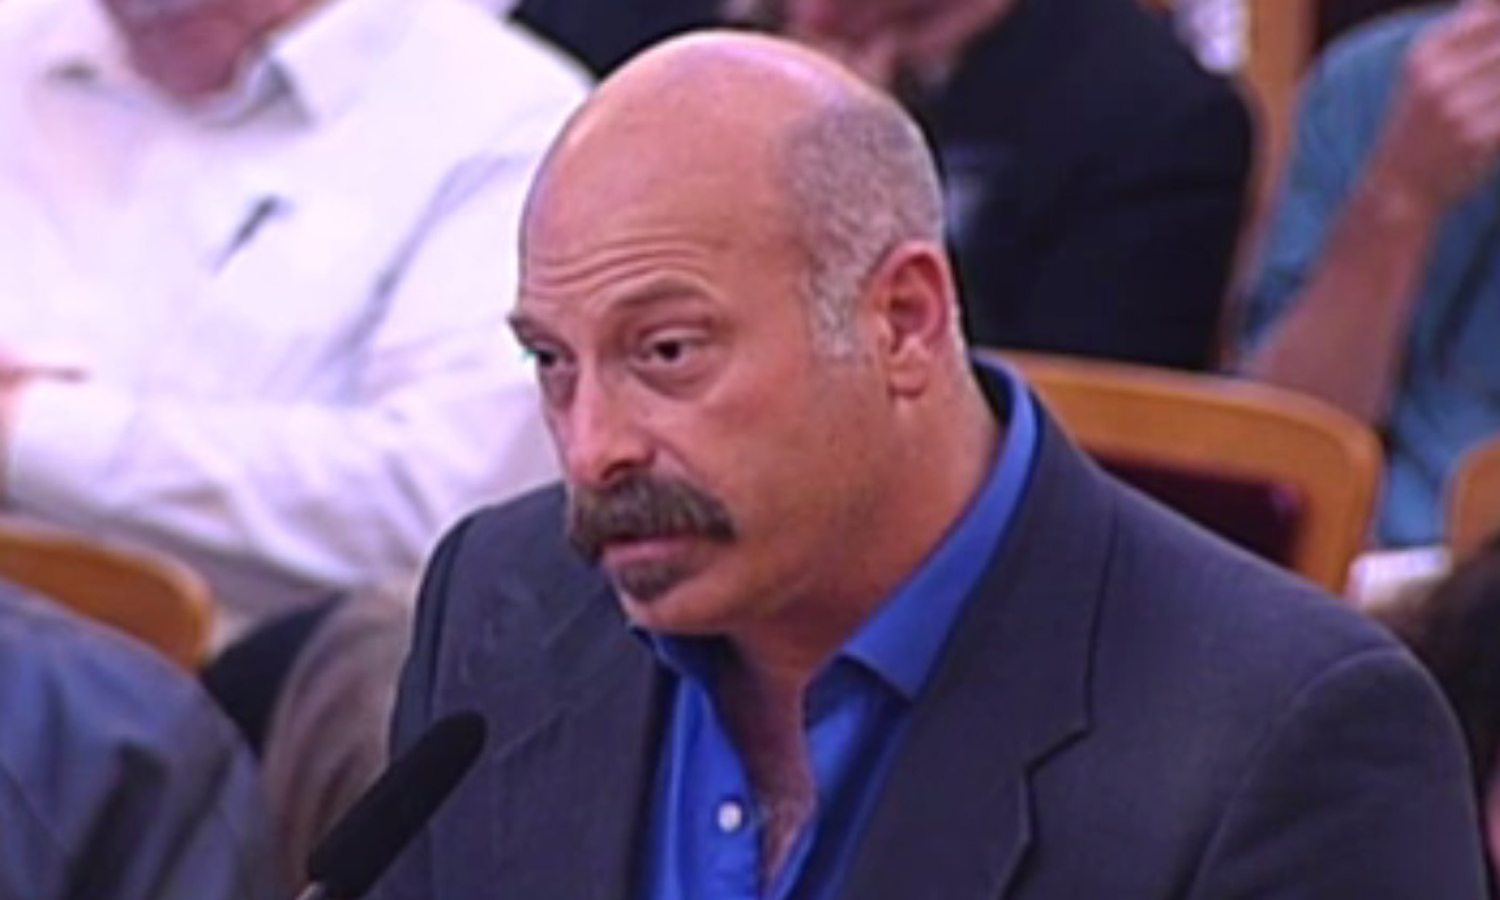 Donald Dewsnup speaks at a San Francisco Municipal Transportation Agency Board of Directors meeting on Oct. 20, 2015 (screengrab via sfgovtv.org).